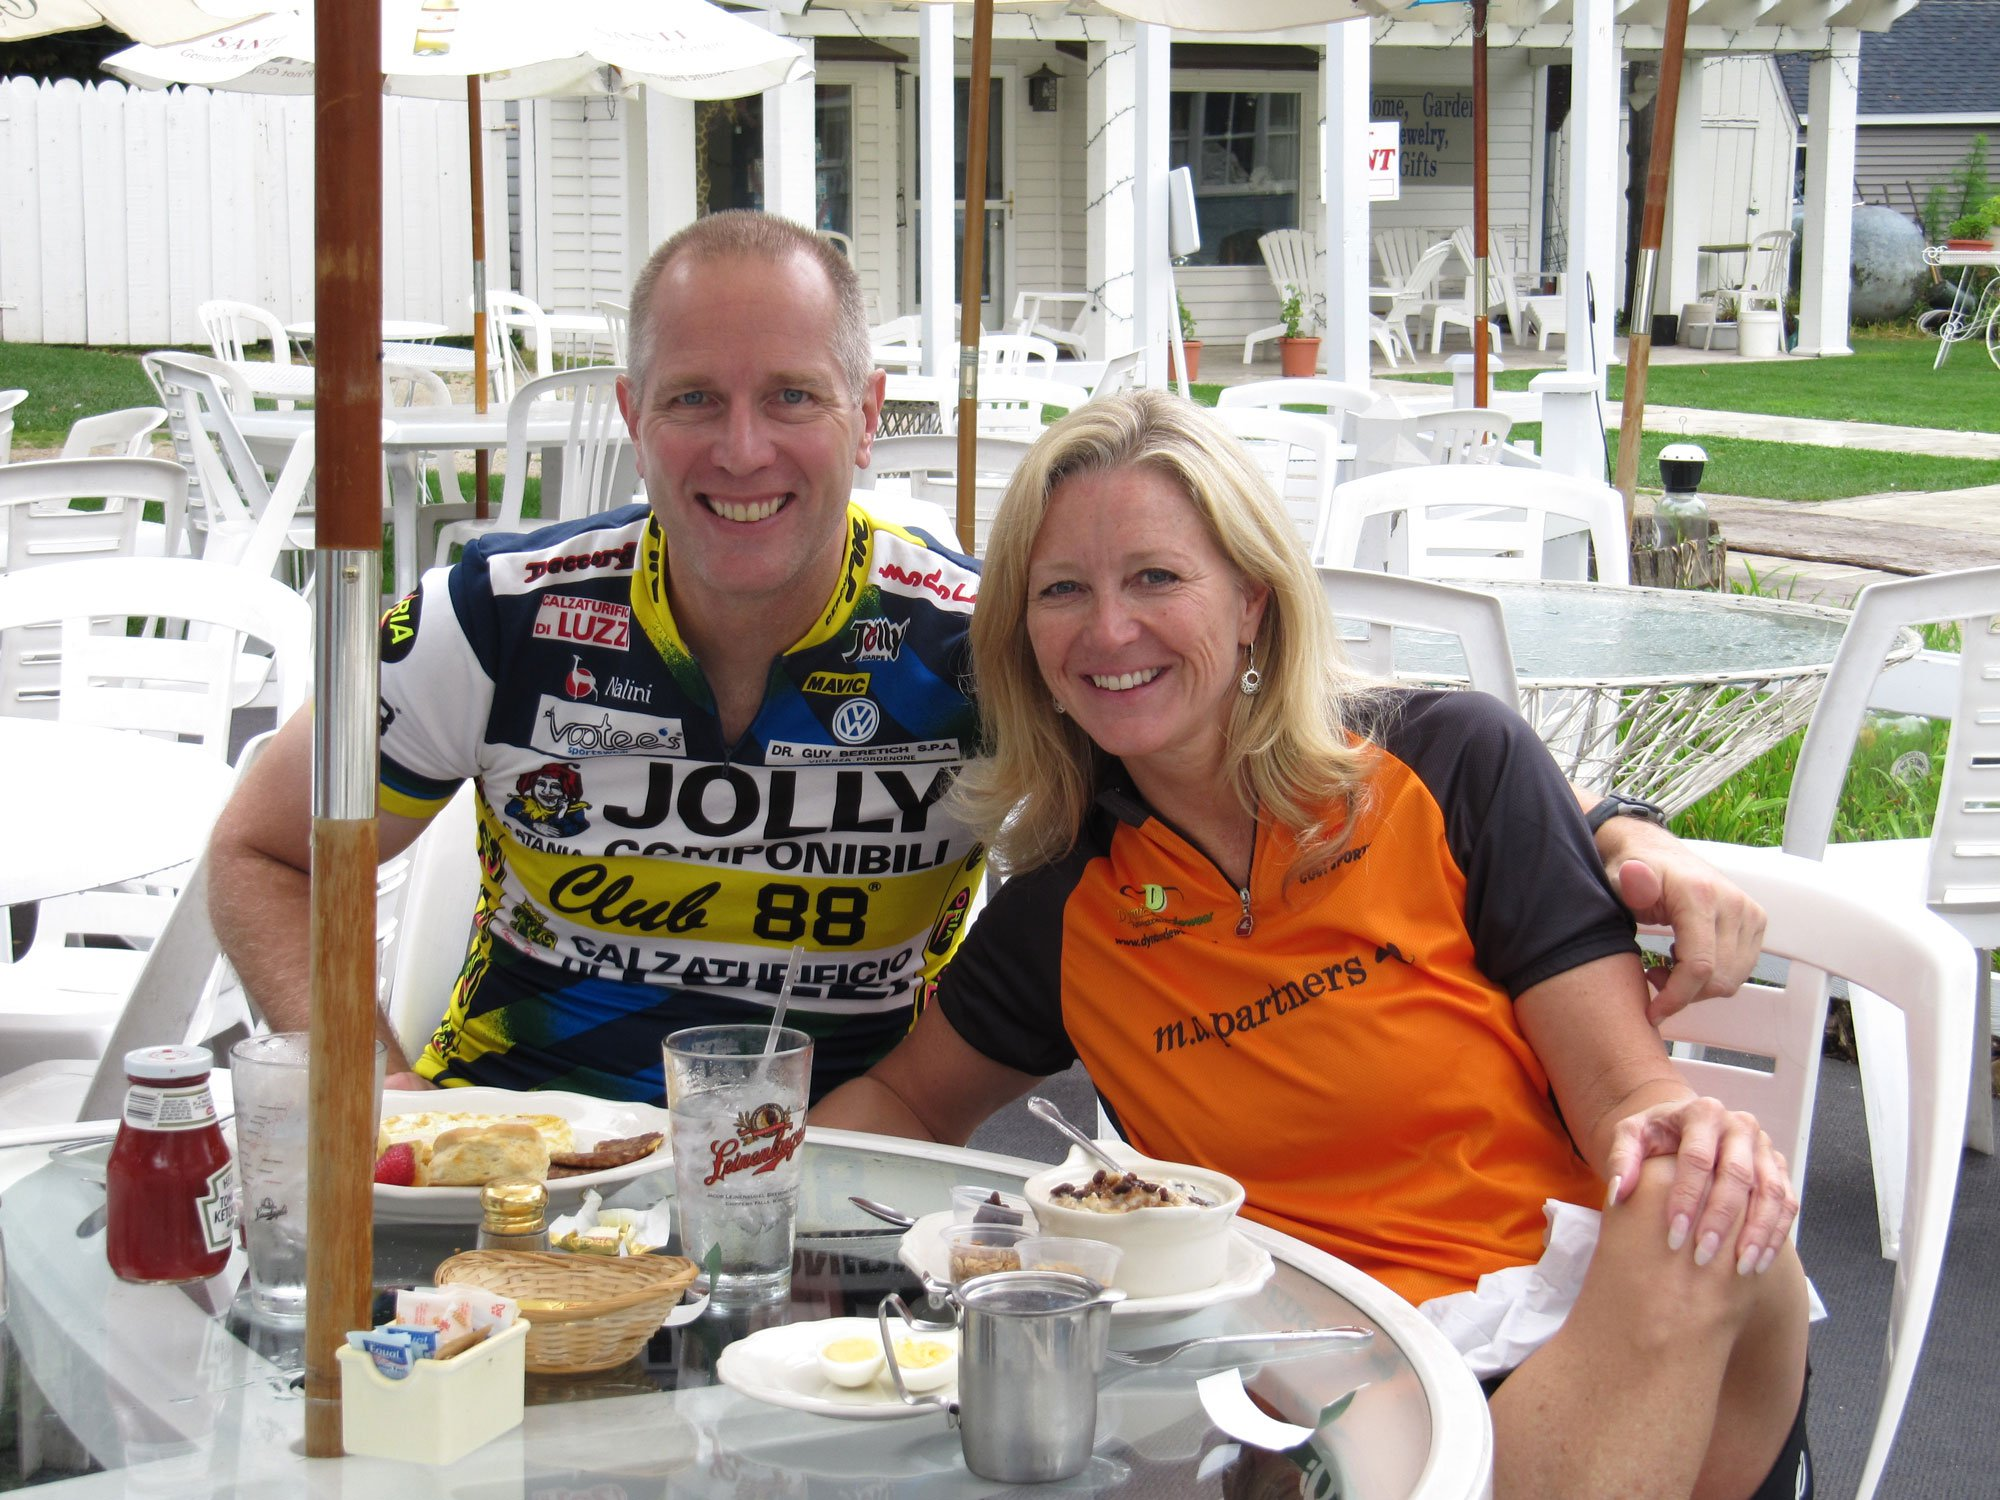 September 2009 - Just a few months into dating; here we are enjoying a pre-ride breakfast at Sunshine Café in Door County Wisconsin